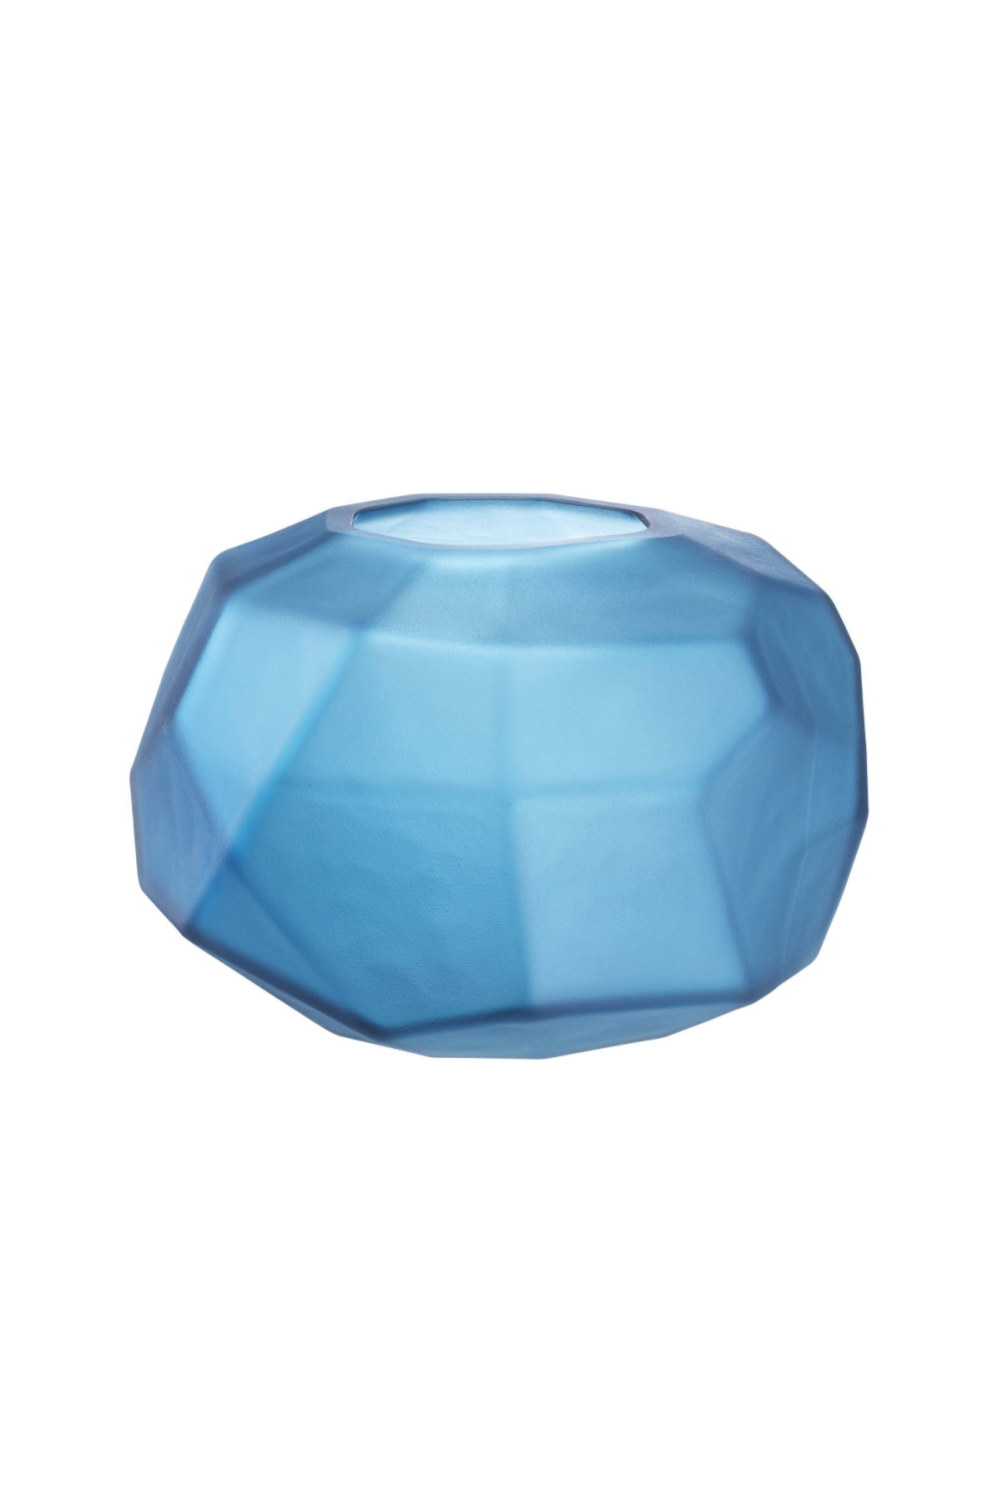 Blue Hand Blown Glass Bowl | Eichholtz Fly | #1 Eichholtz Retailer